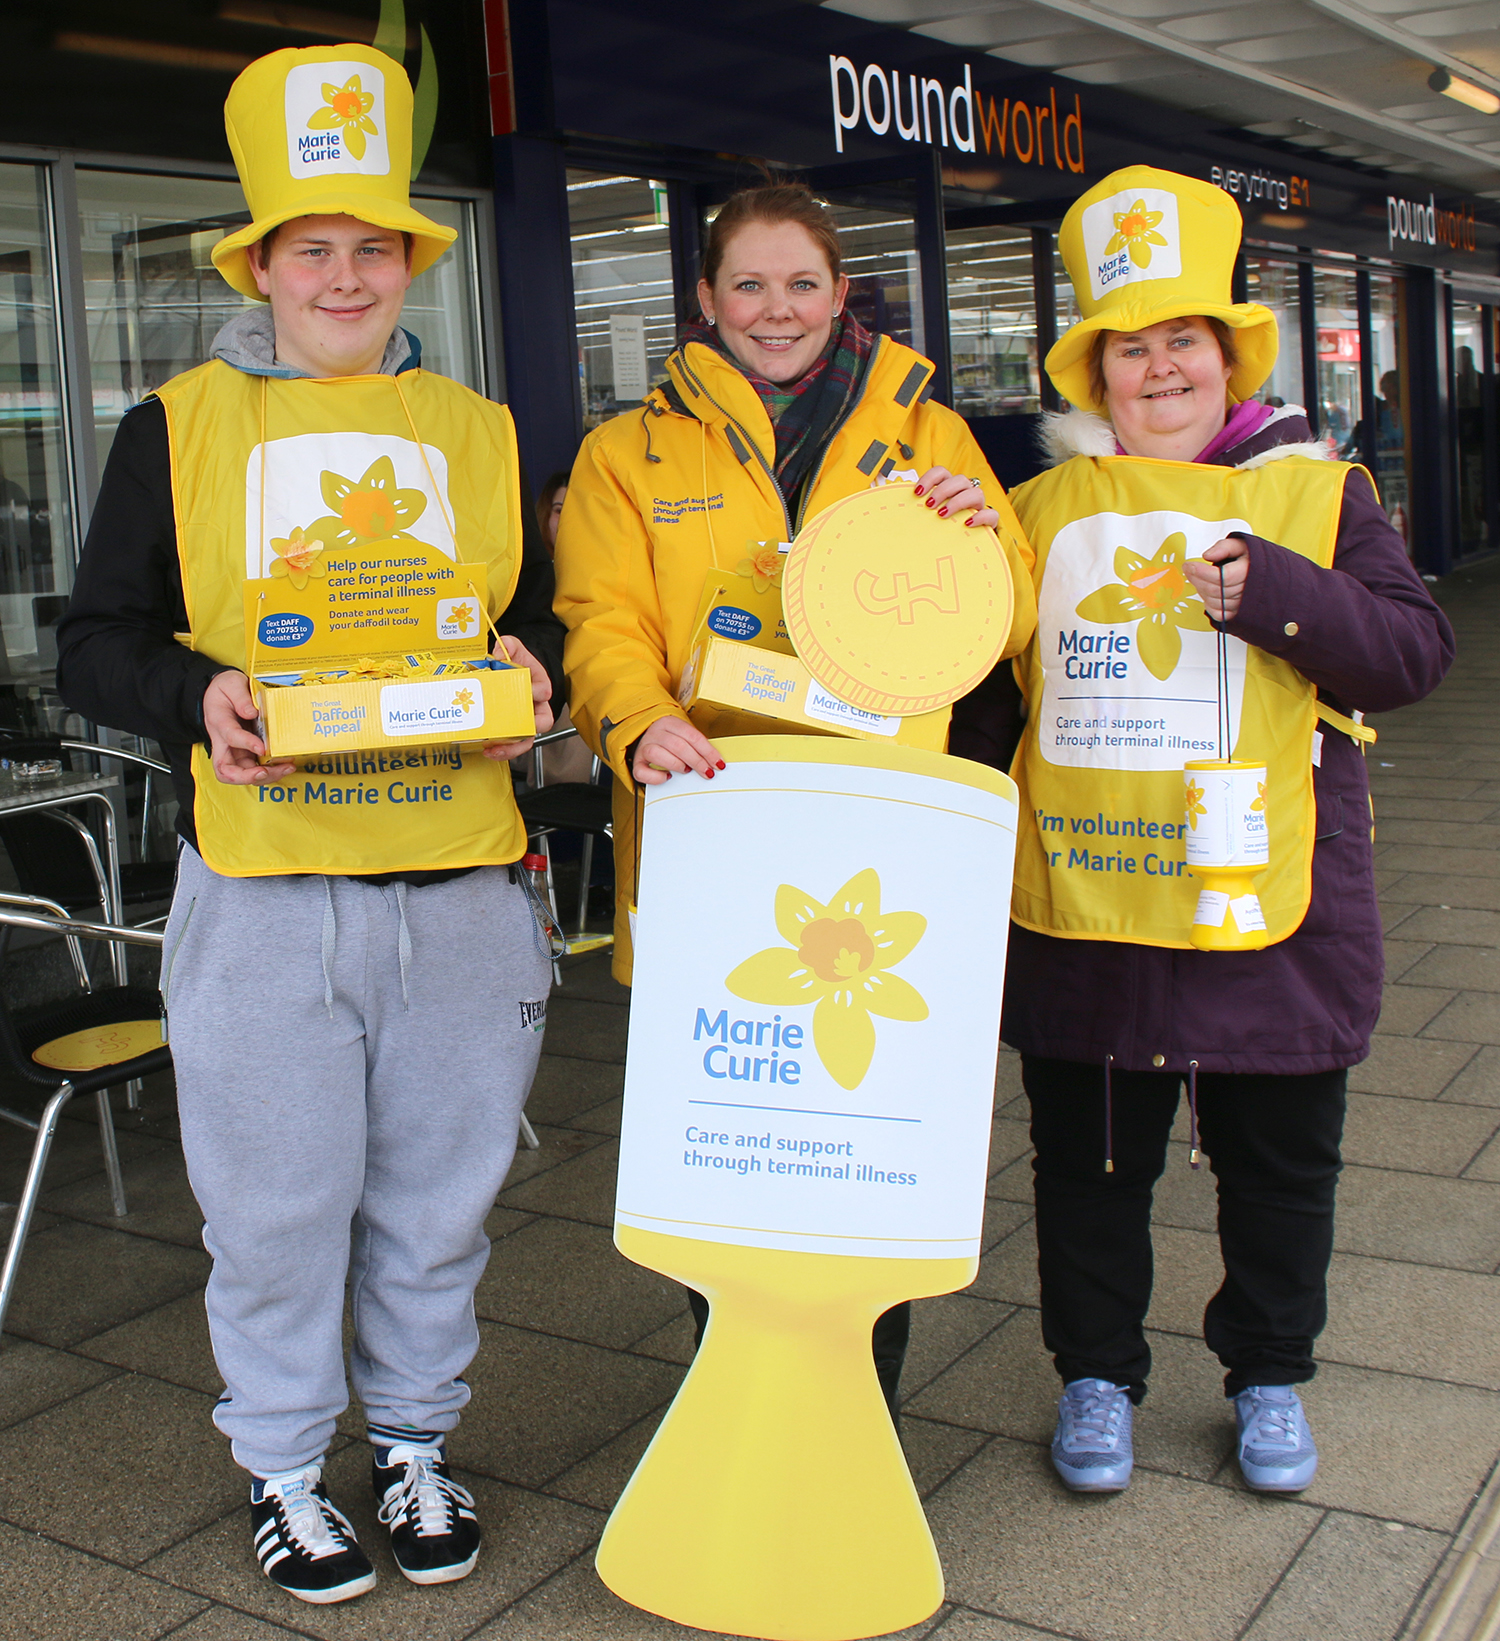 Join the Aycliffe Branch of Marie Curie Charity